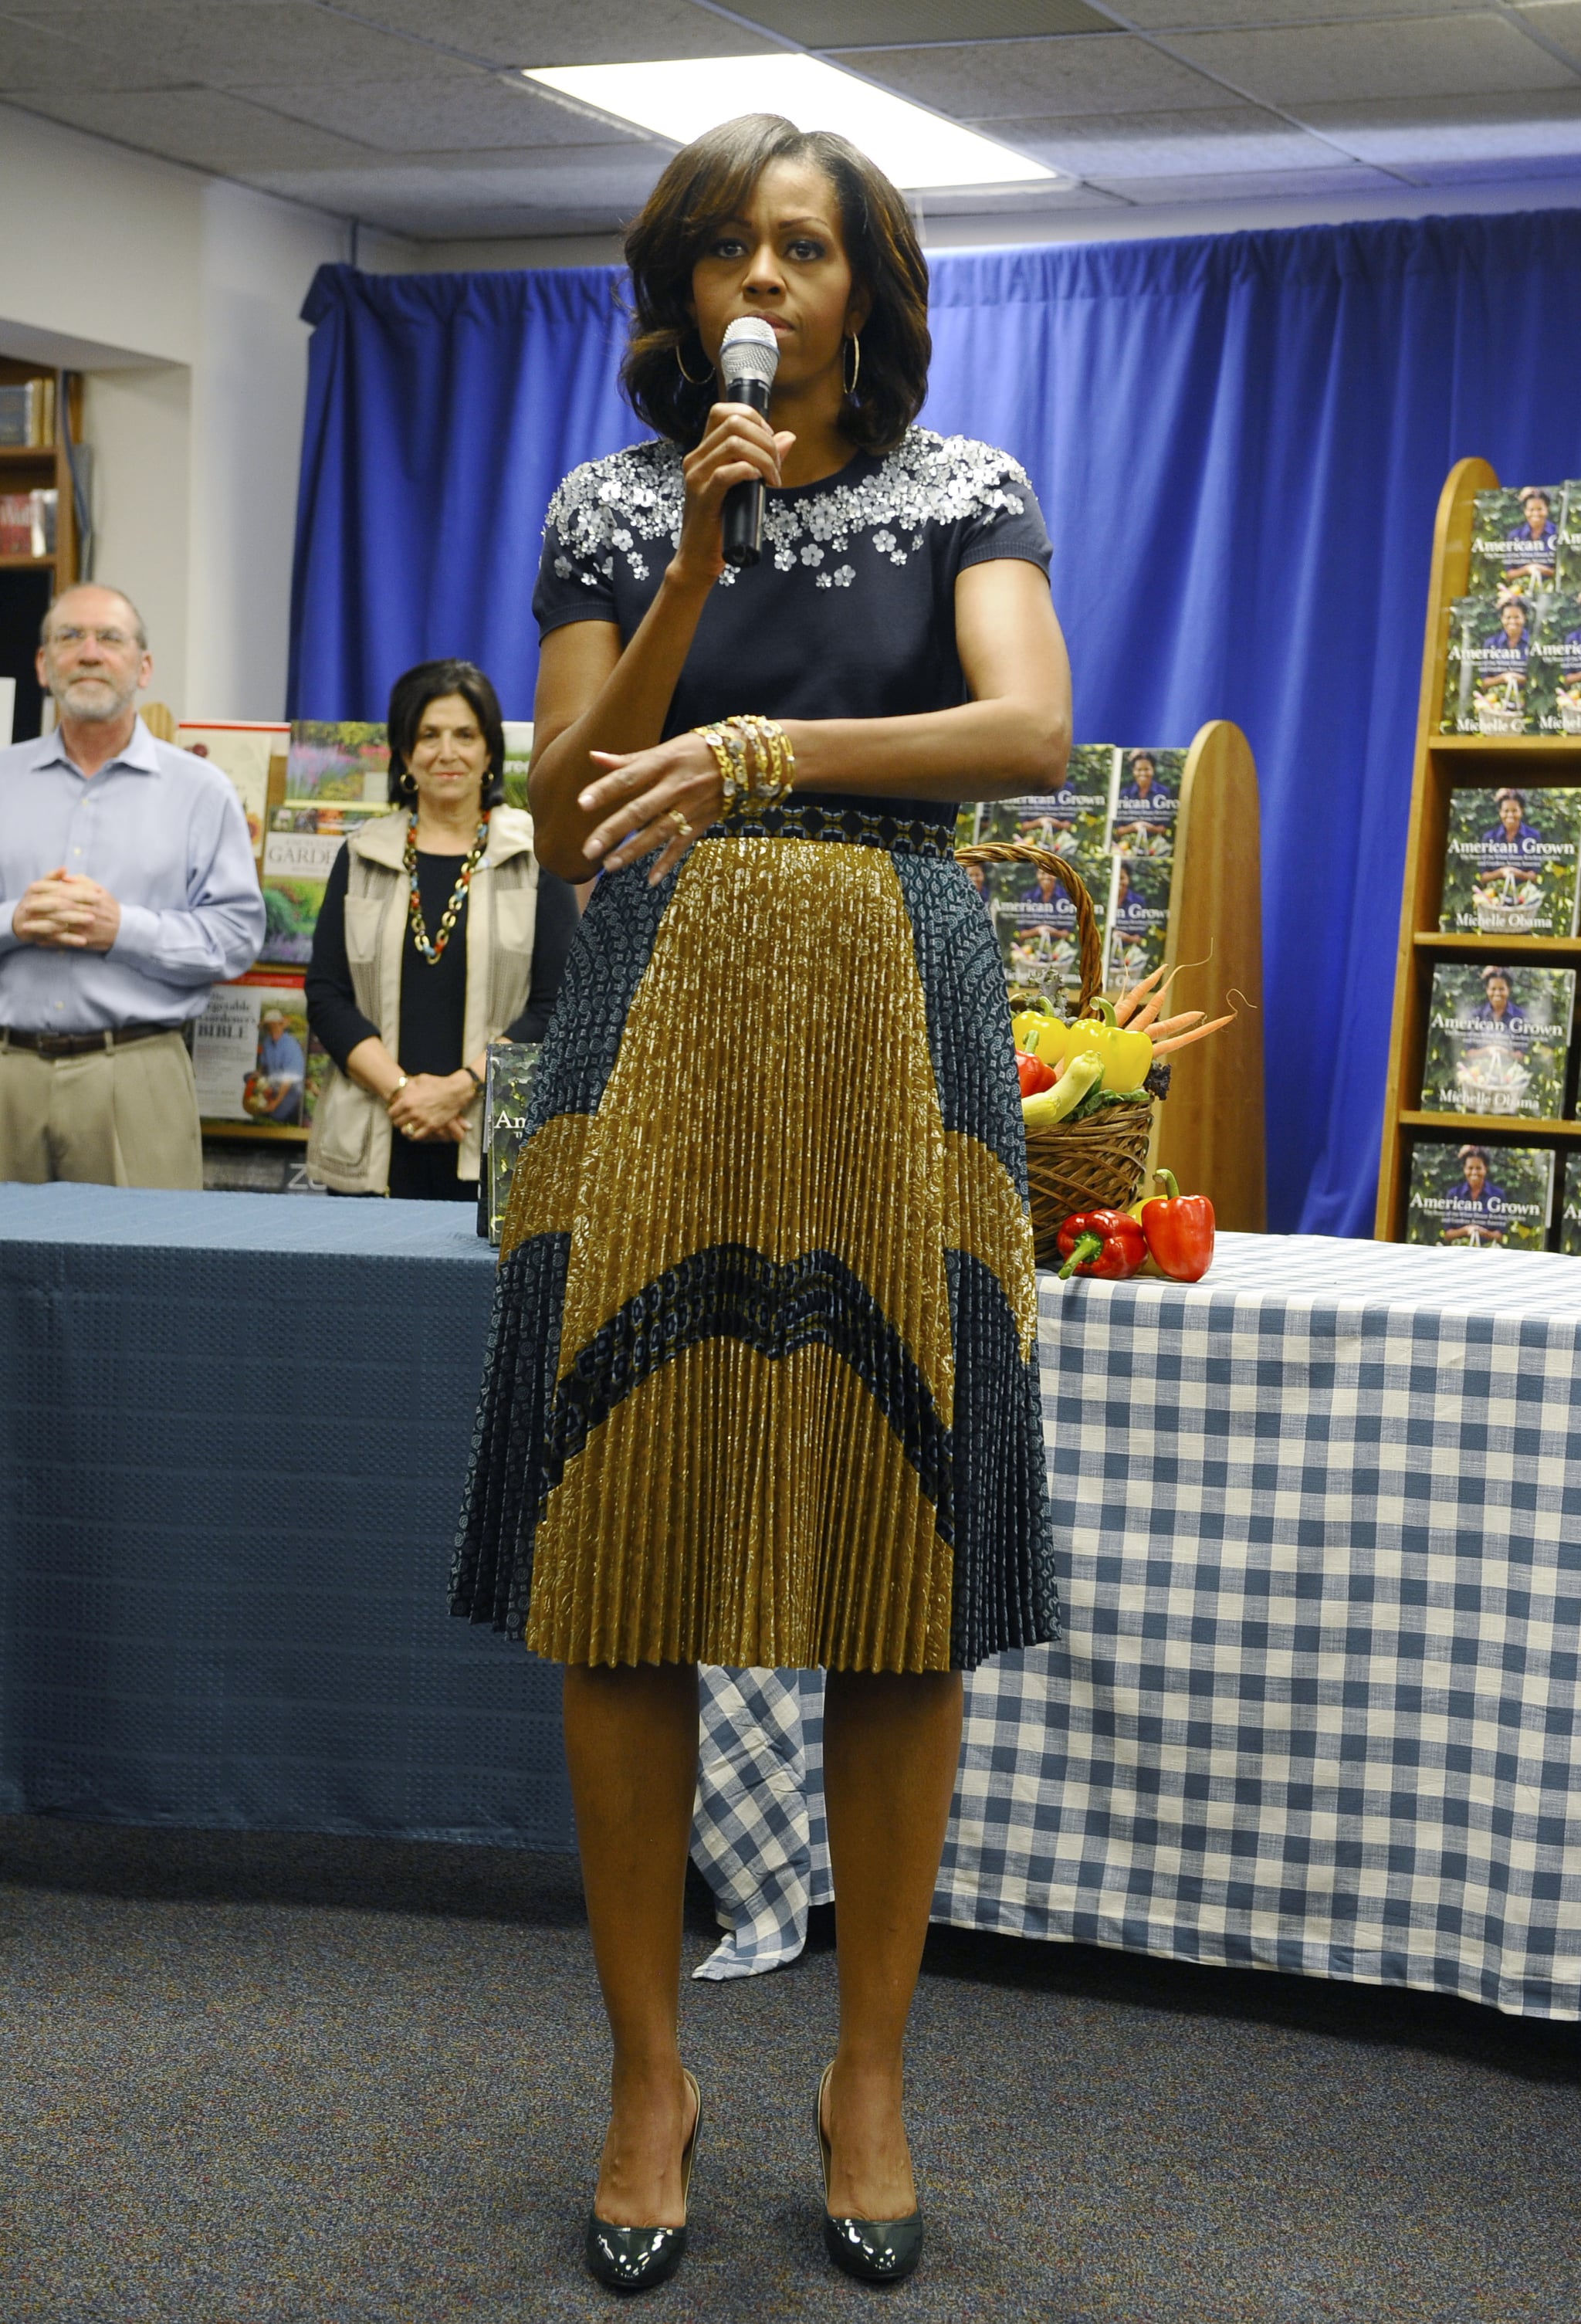 Michelle Obama paired an embellished navy top with an even more dynamic skirt on bottom. The blue and gold color pattern only elevated the crisp pleats and subtle embroidery.